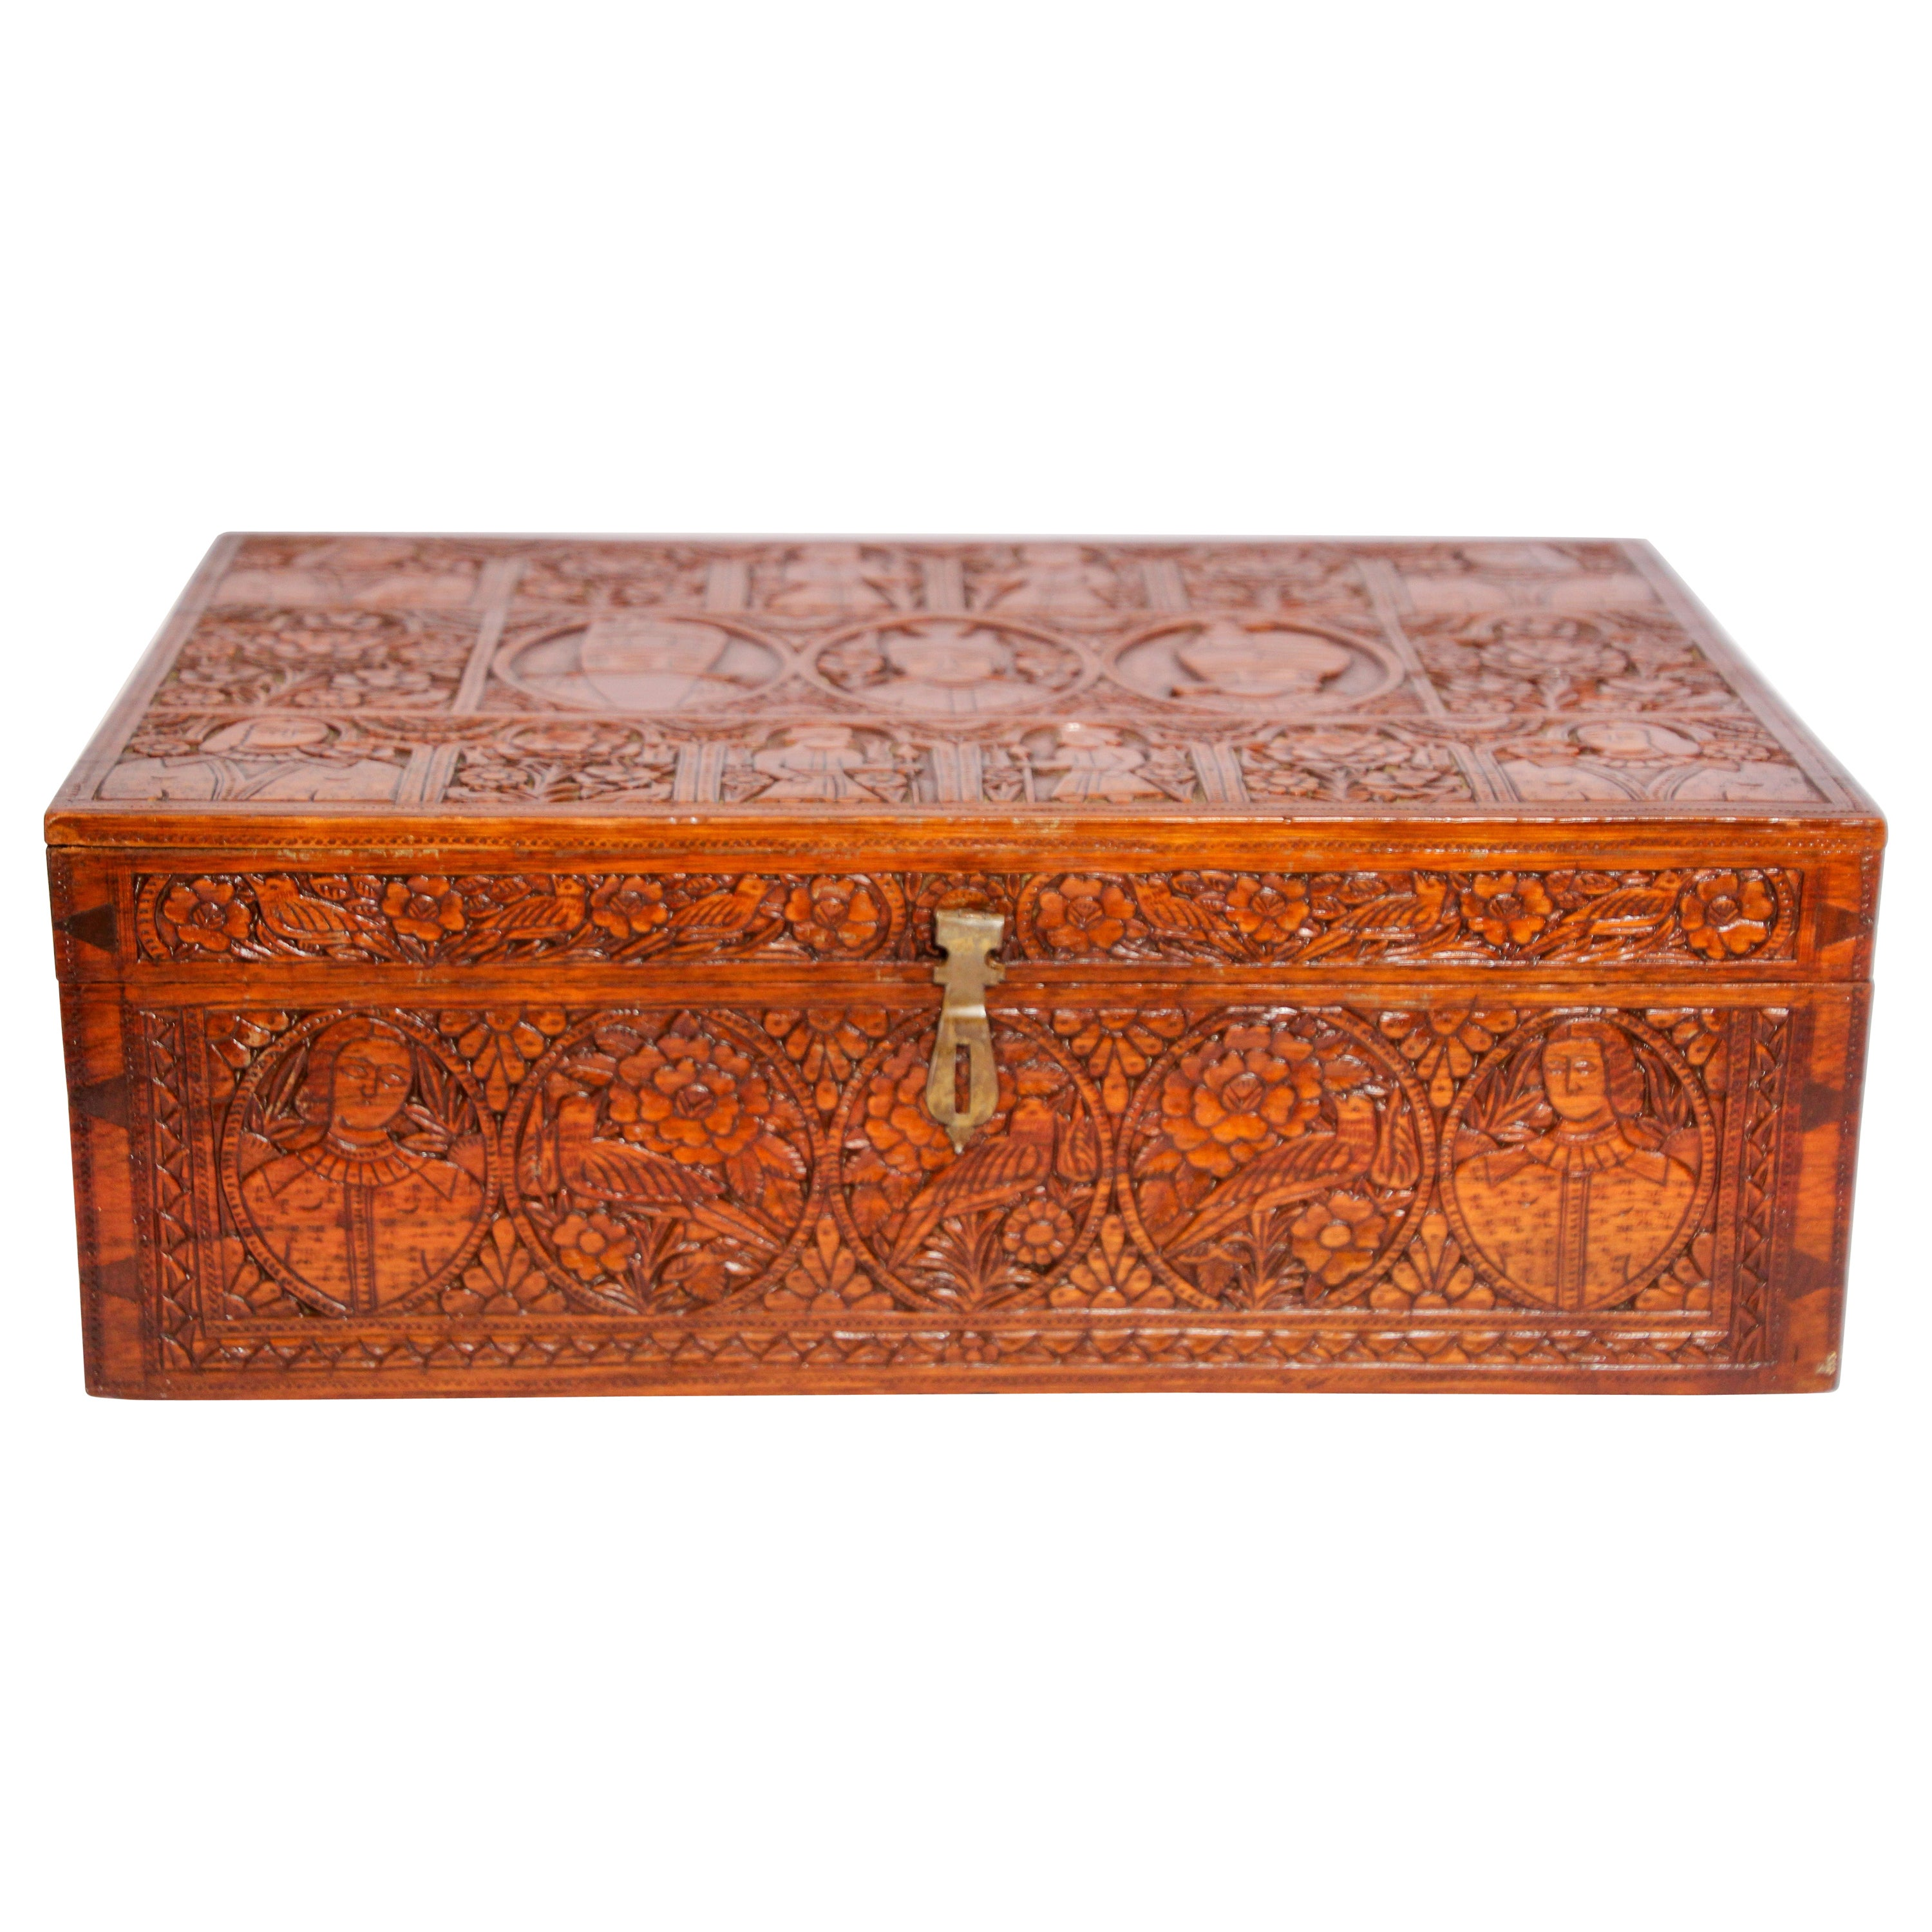 Large Early 19th Century Antique Hand Carved Wooden Mughal Decorative Box